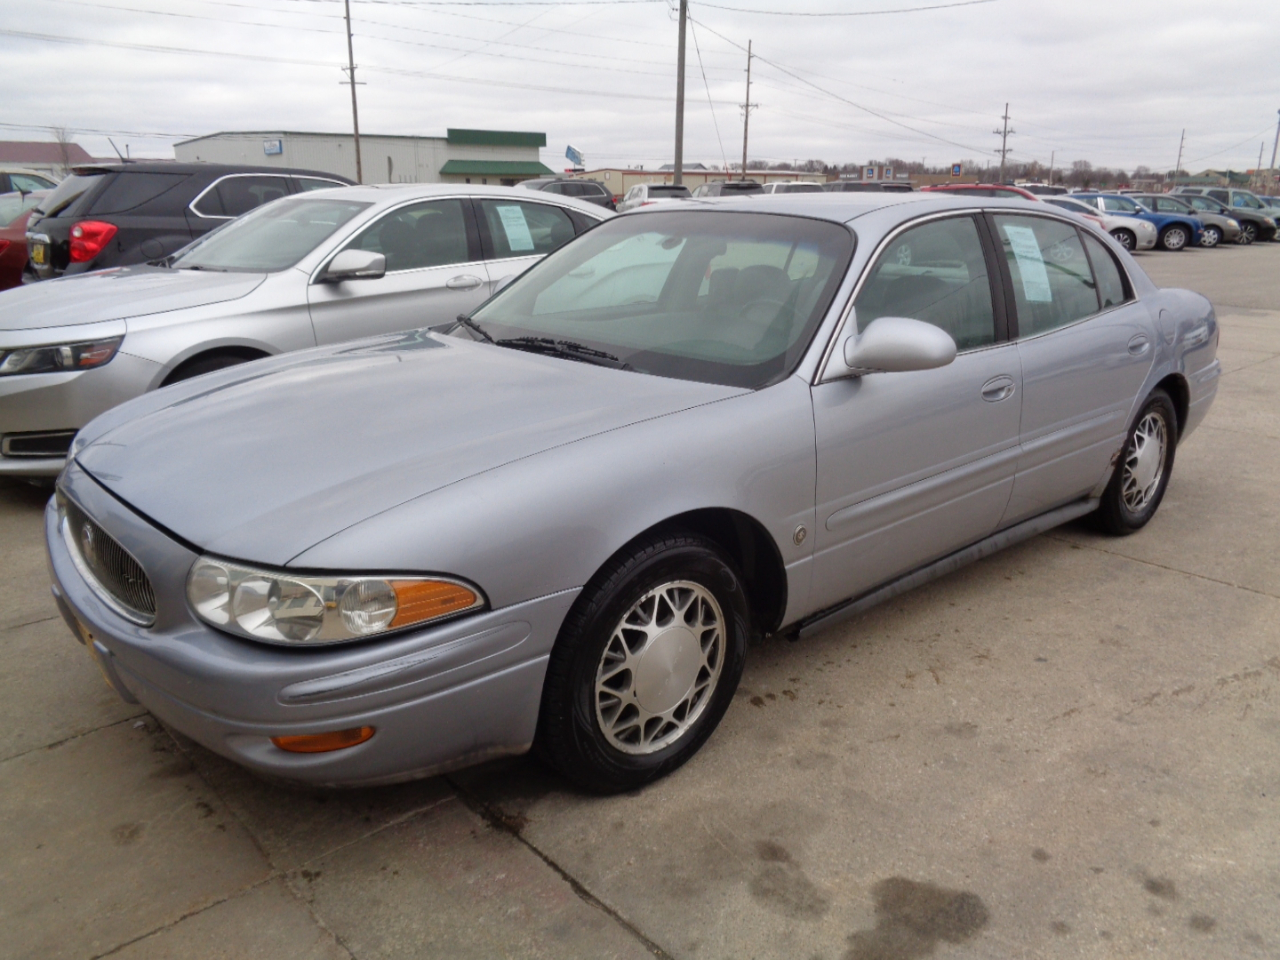 used 2004 buick lesabre limited for sale in marion ia 52302 hawkeye auto used 2004 buick lesabre limited for